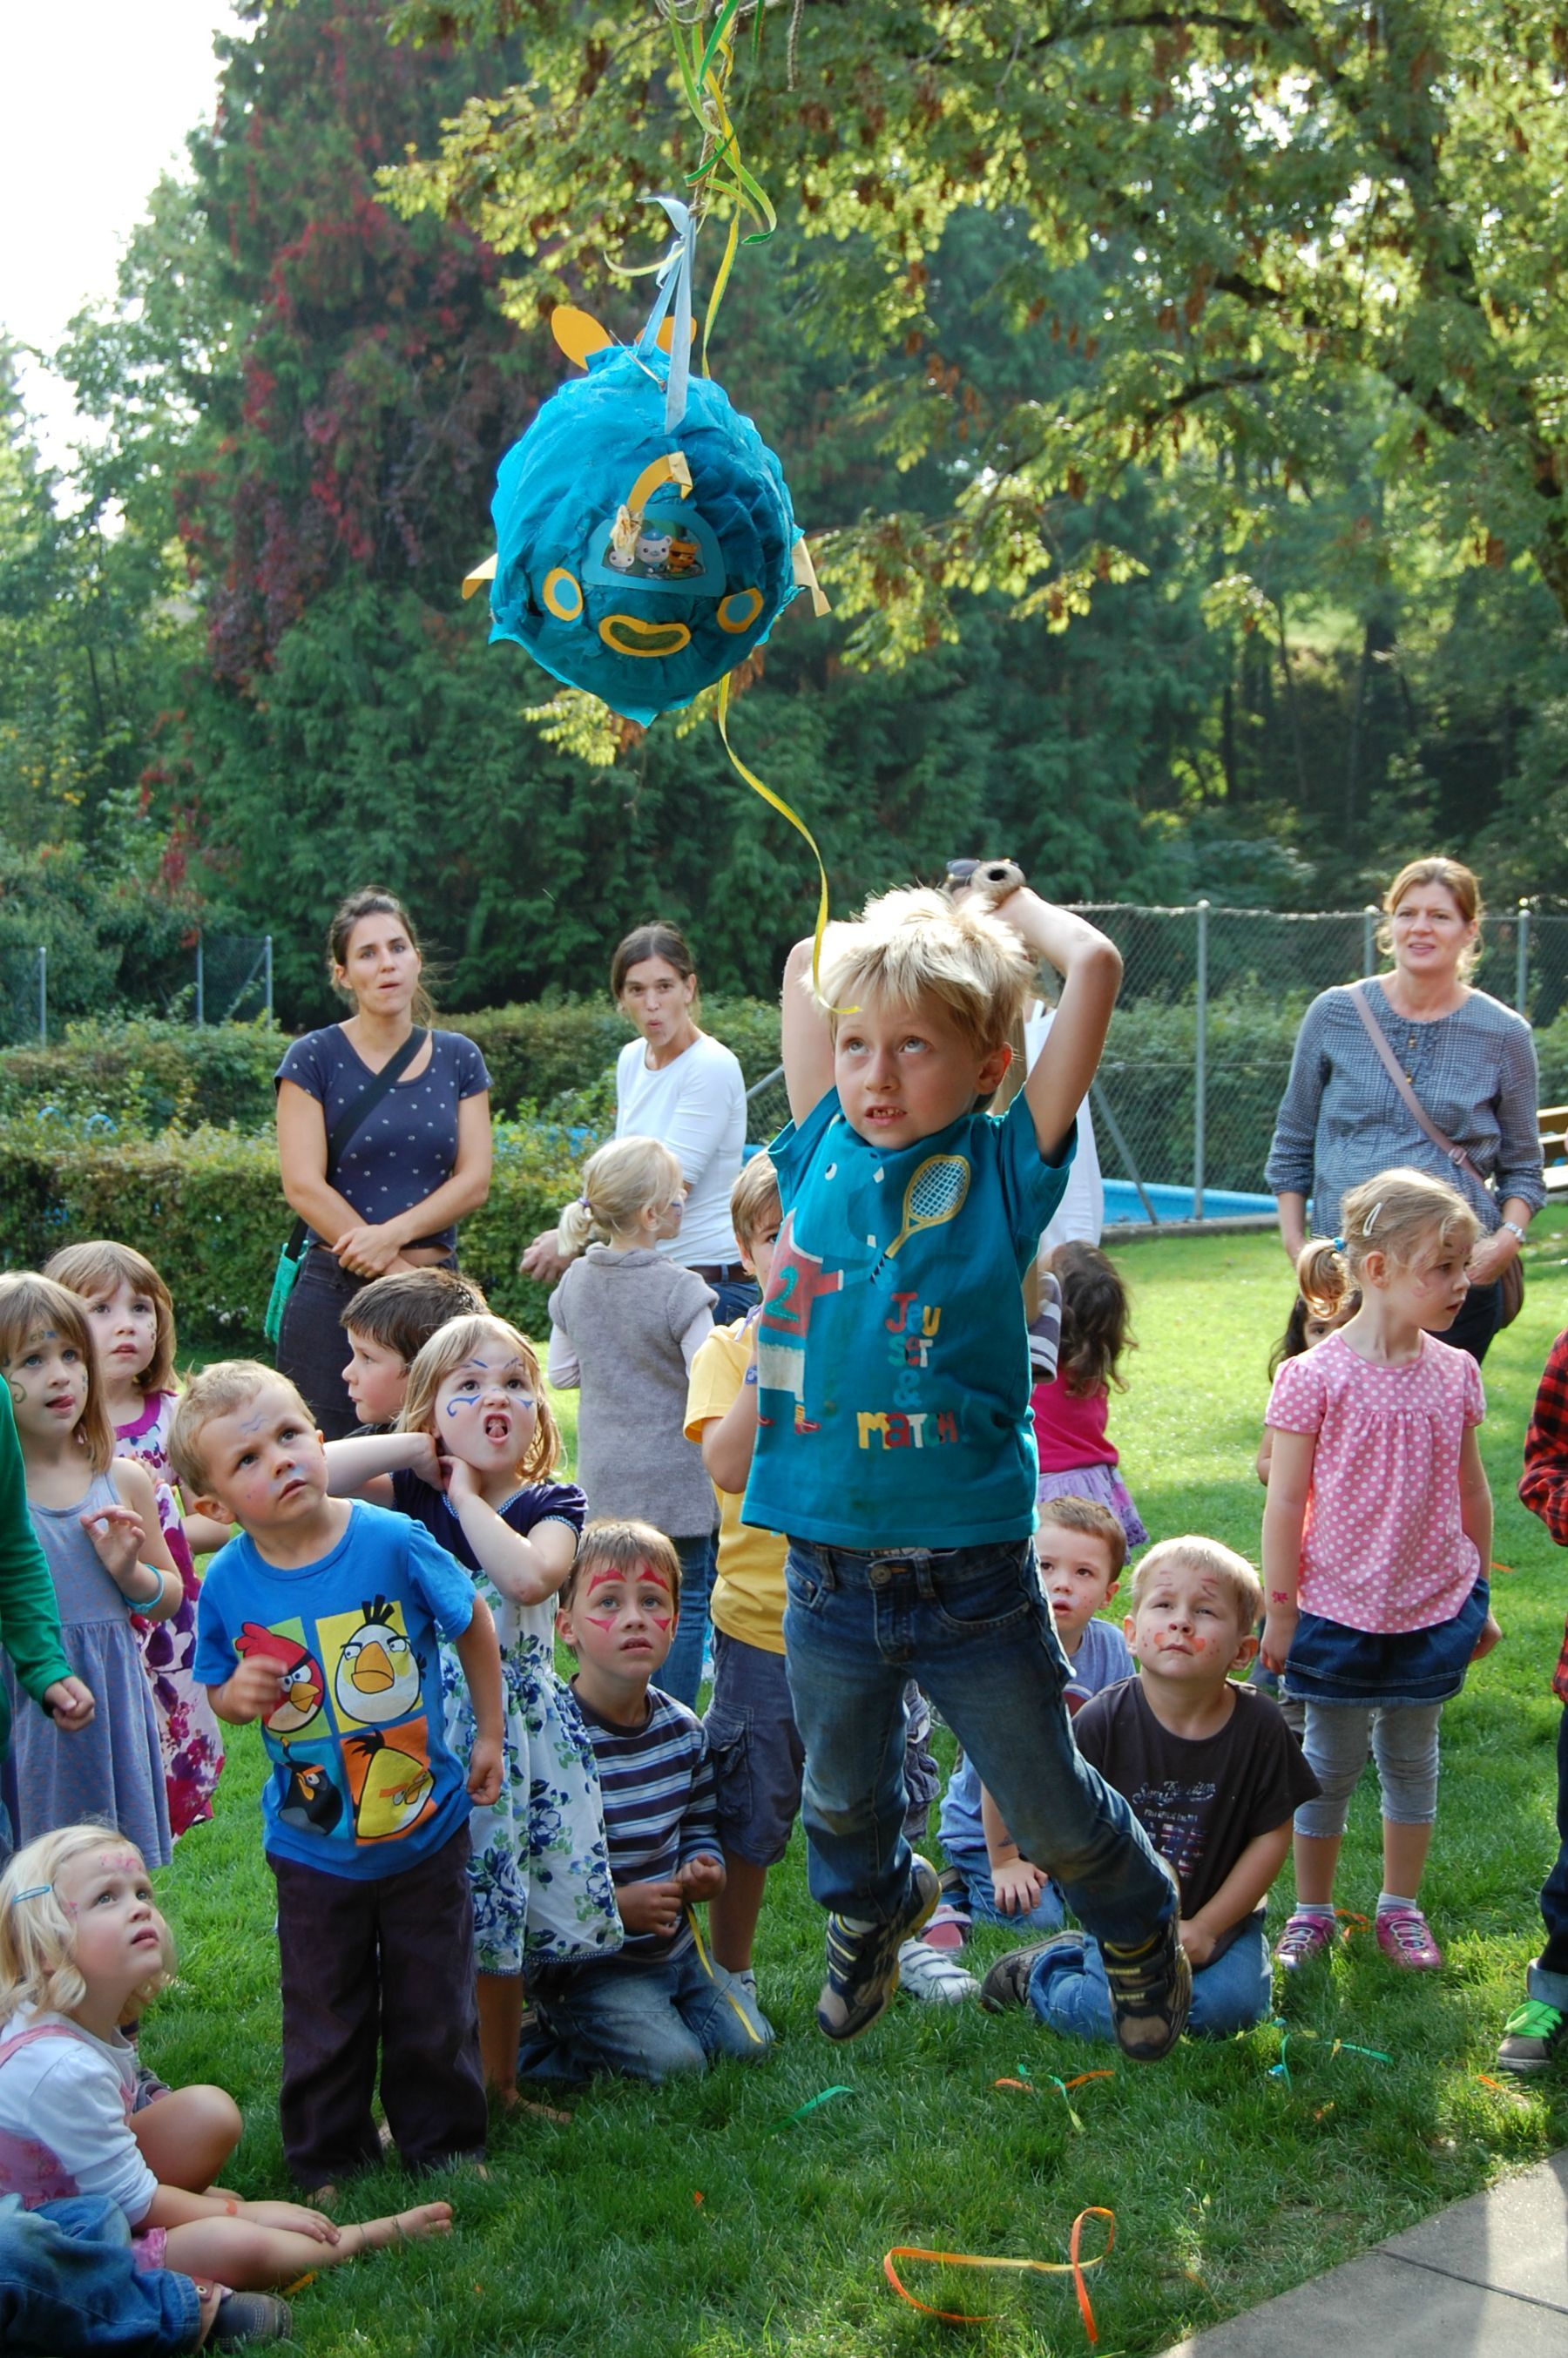 Little boy about to hit a pinata. Keeping his eyes on the prize. - Imgur